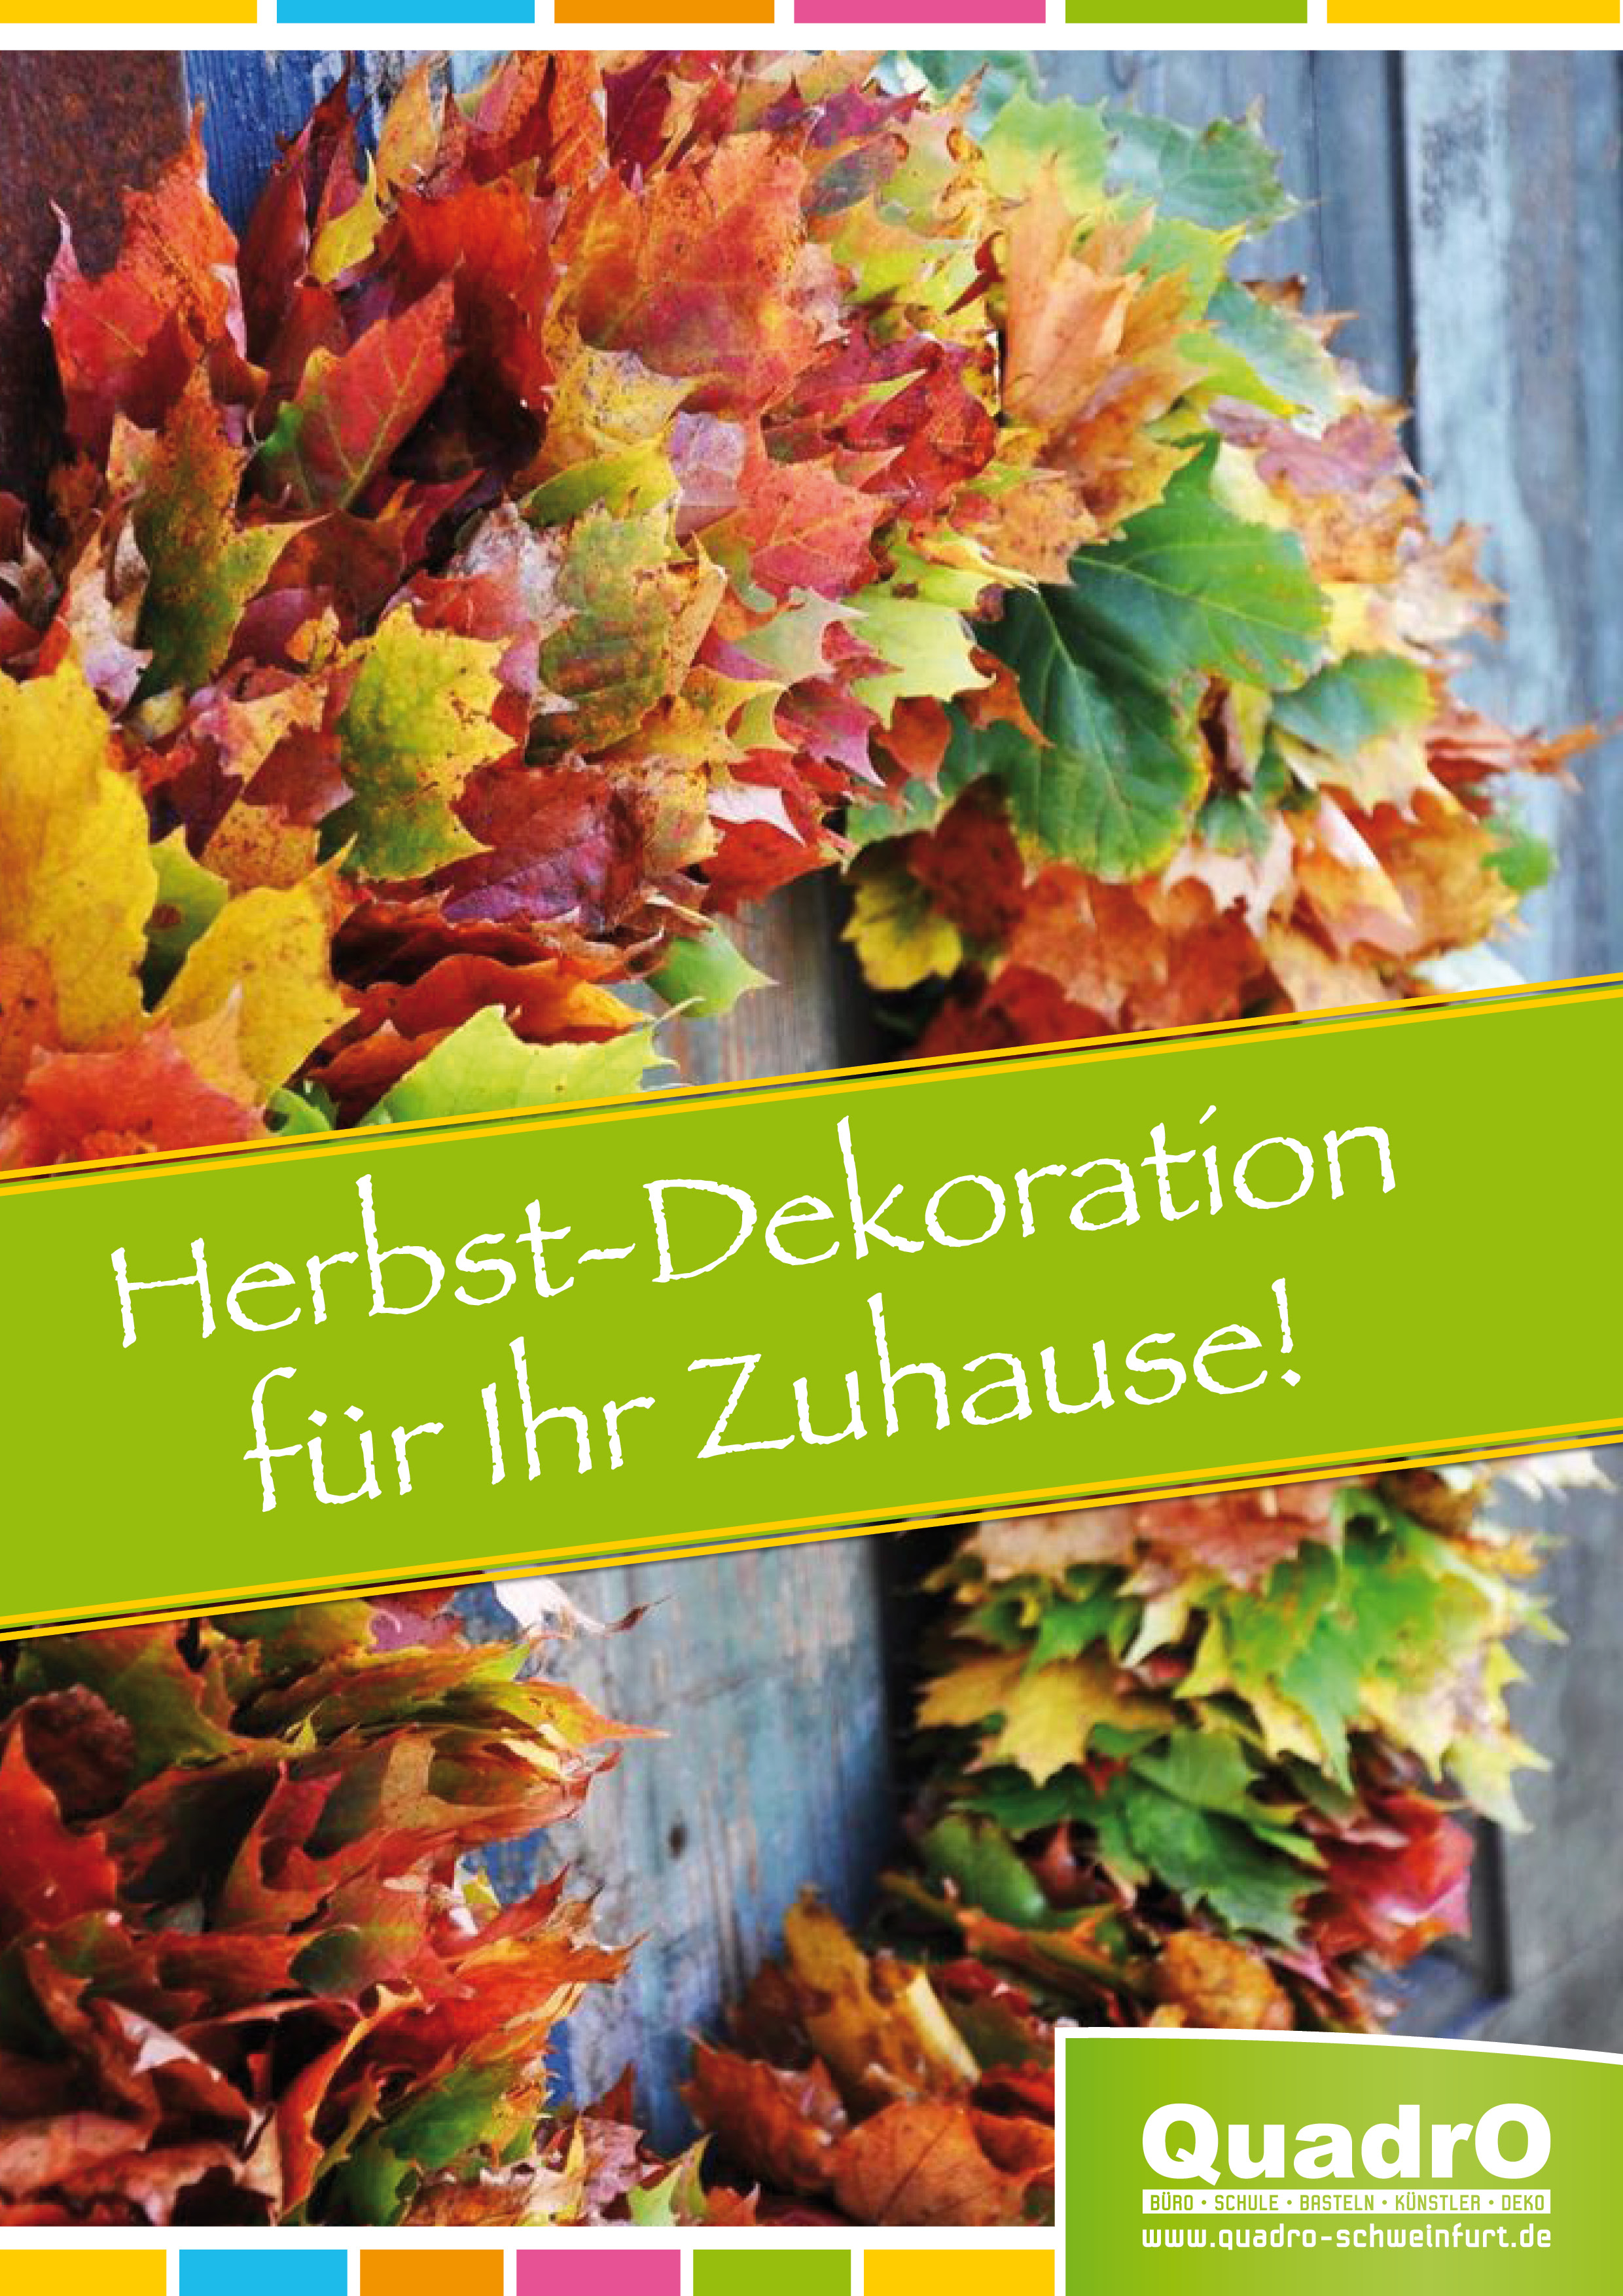 Herbst, Deko, Erntedank, Patisserie, Backen, QuadrO